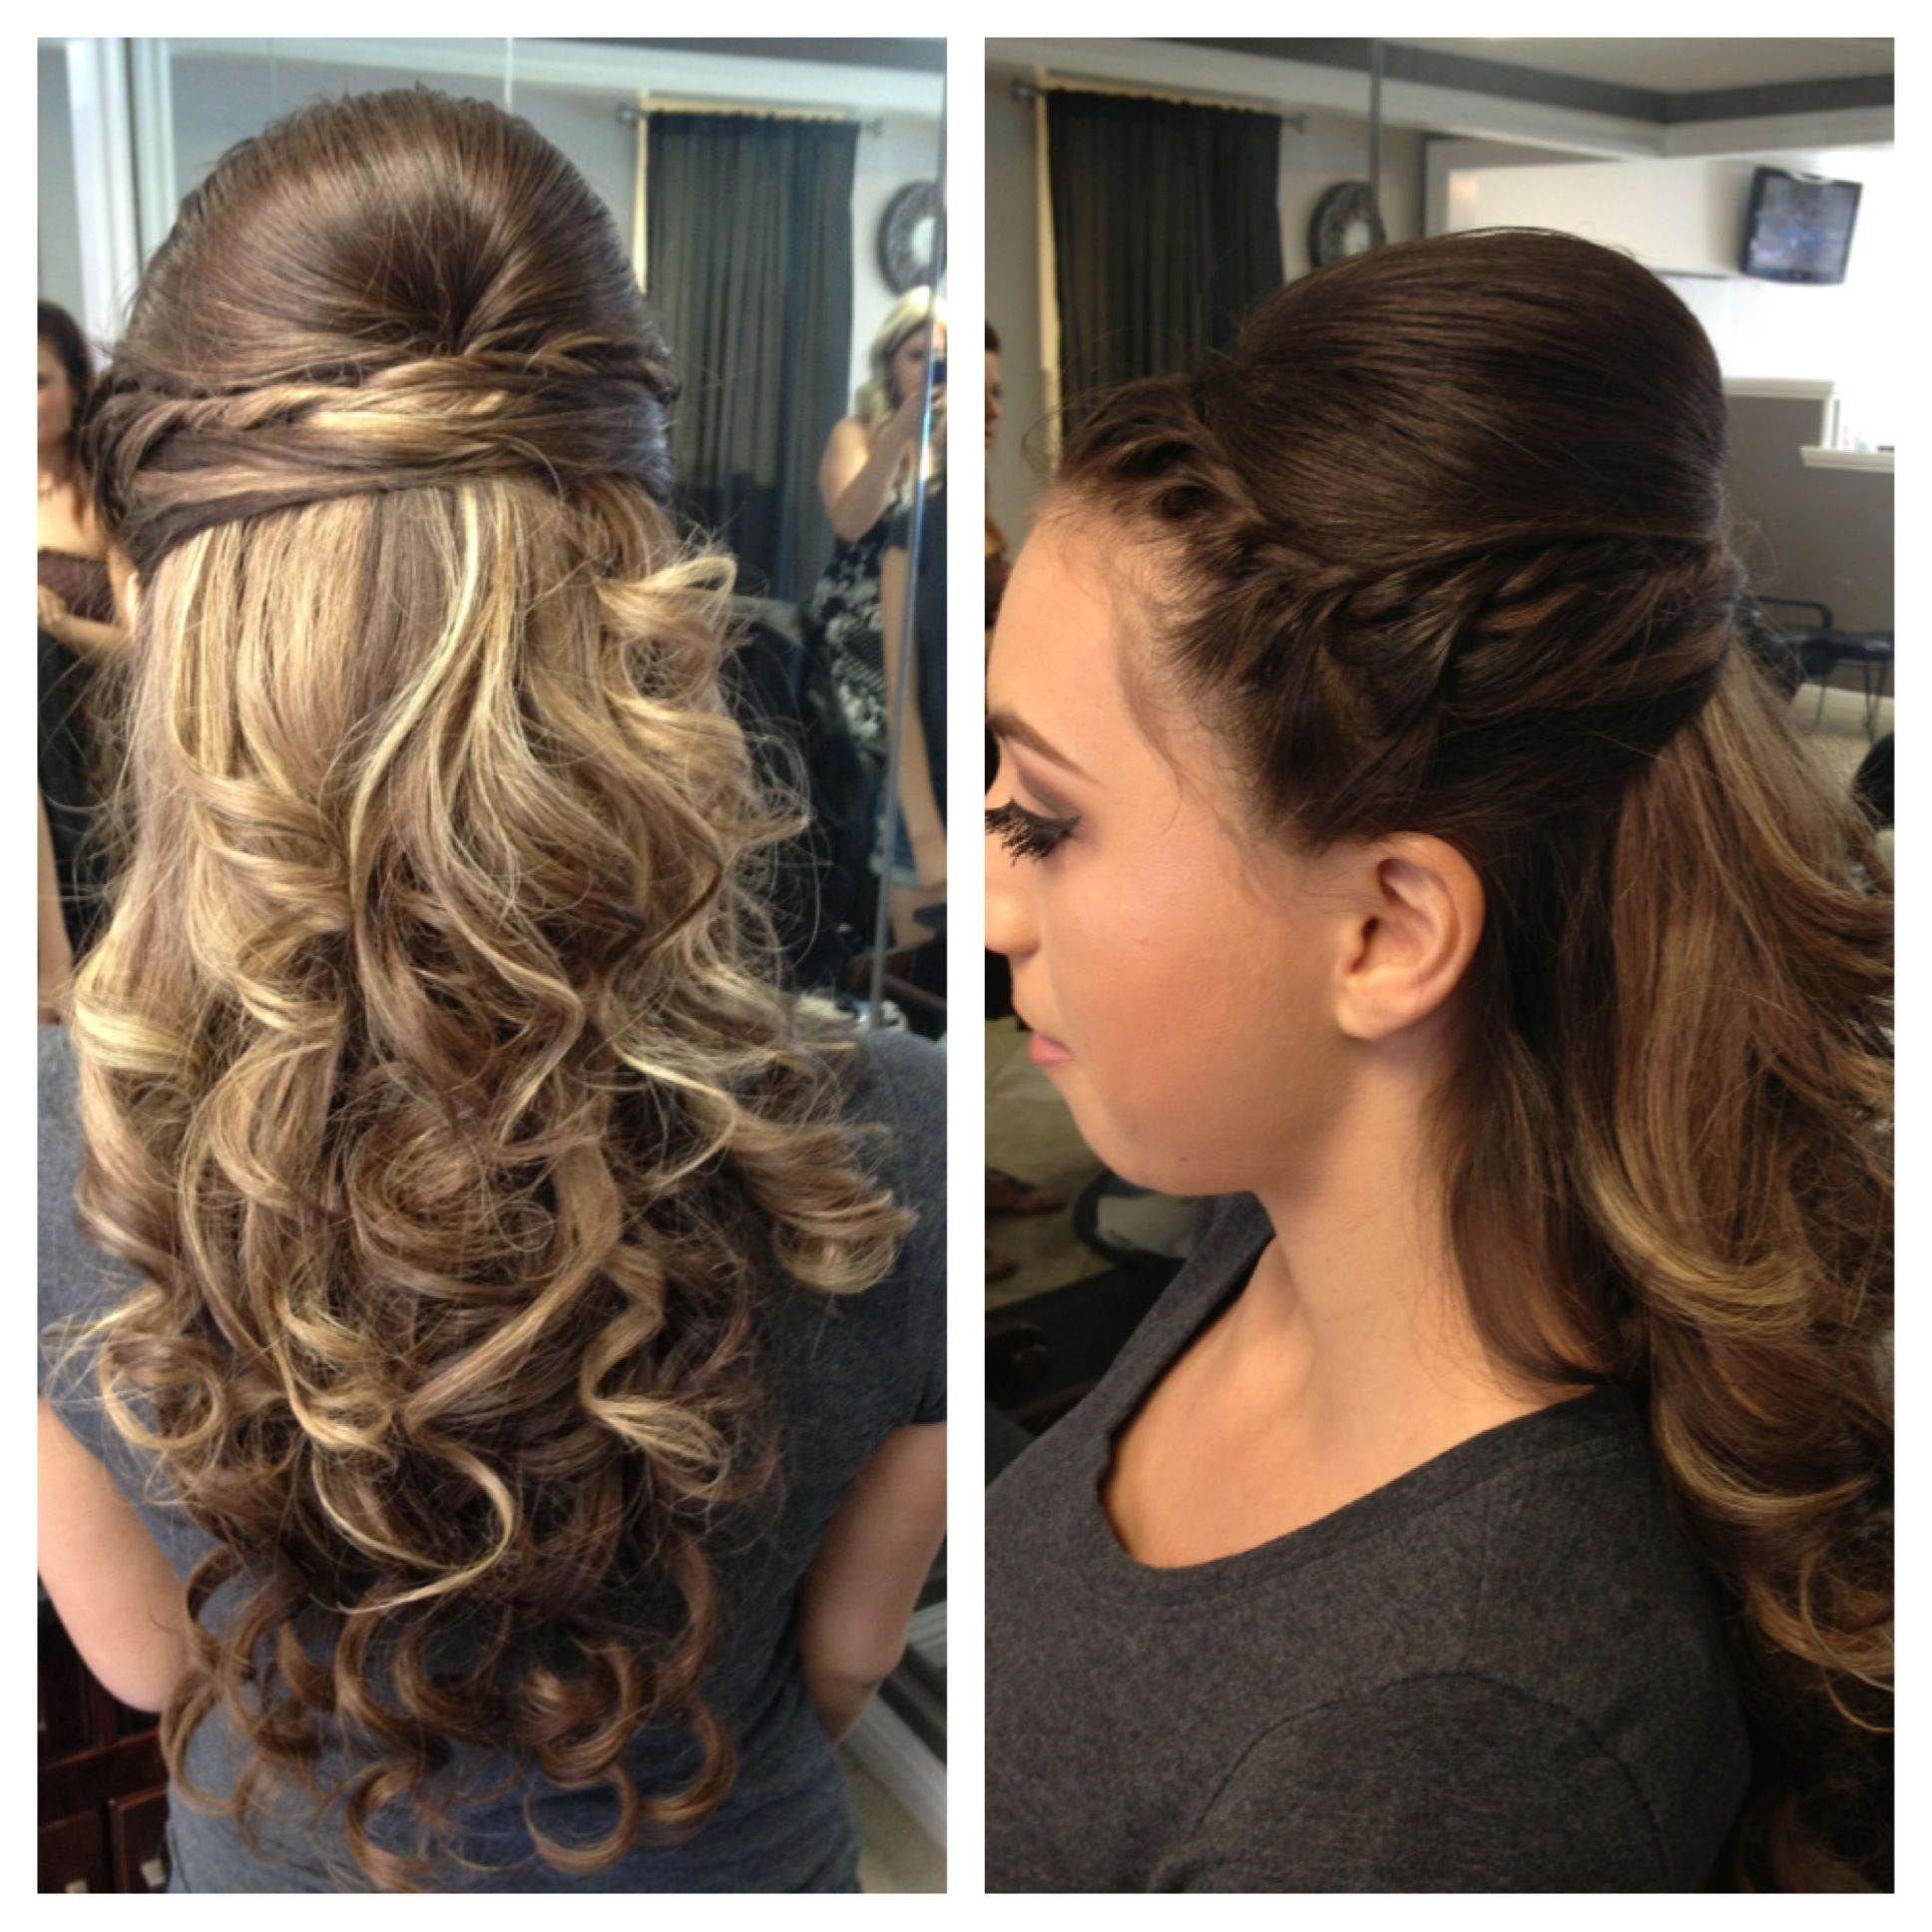 My Curly Half Up Do Hair Style For Prom Hair Prom Hair